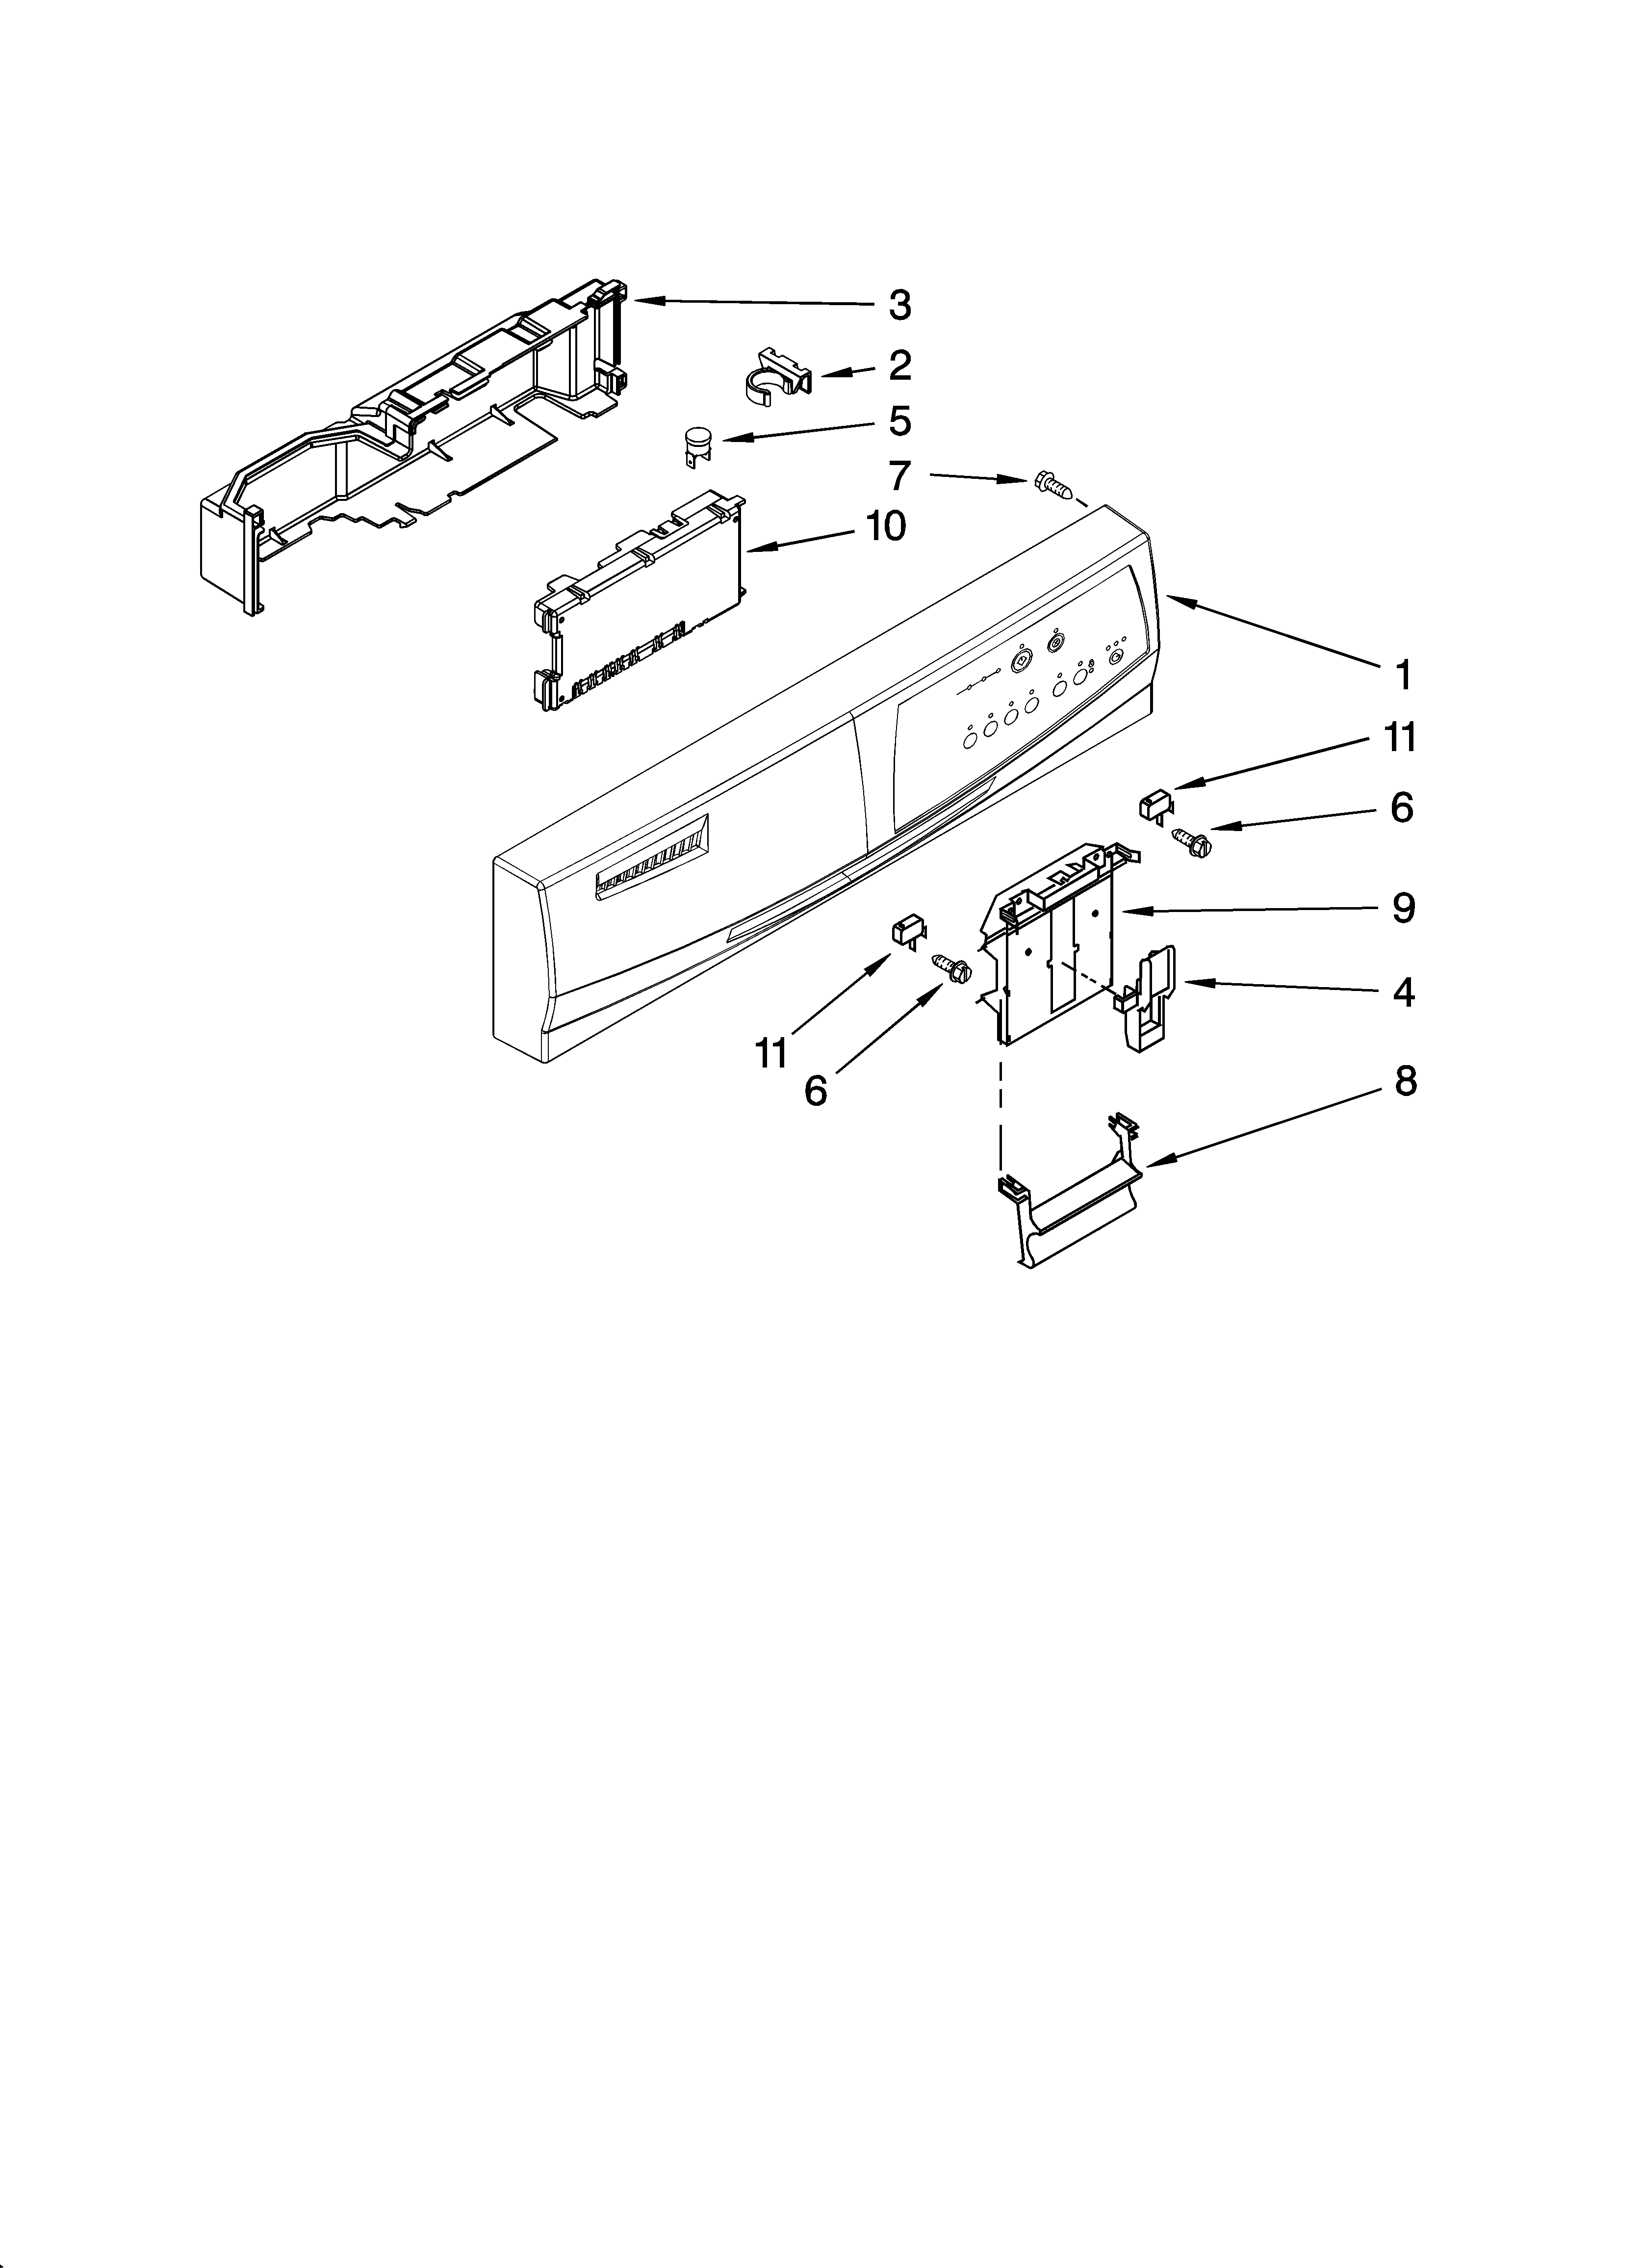 whirlpool dishwasher schematic diagram